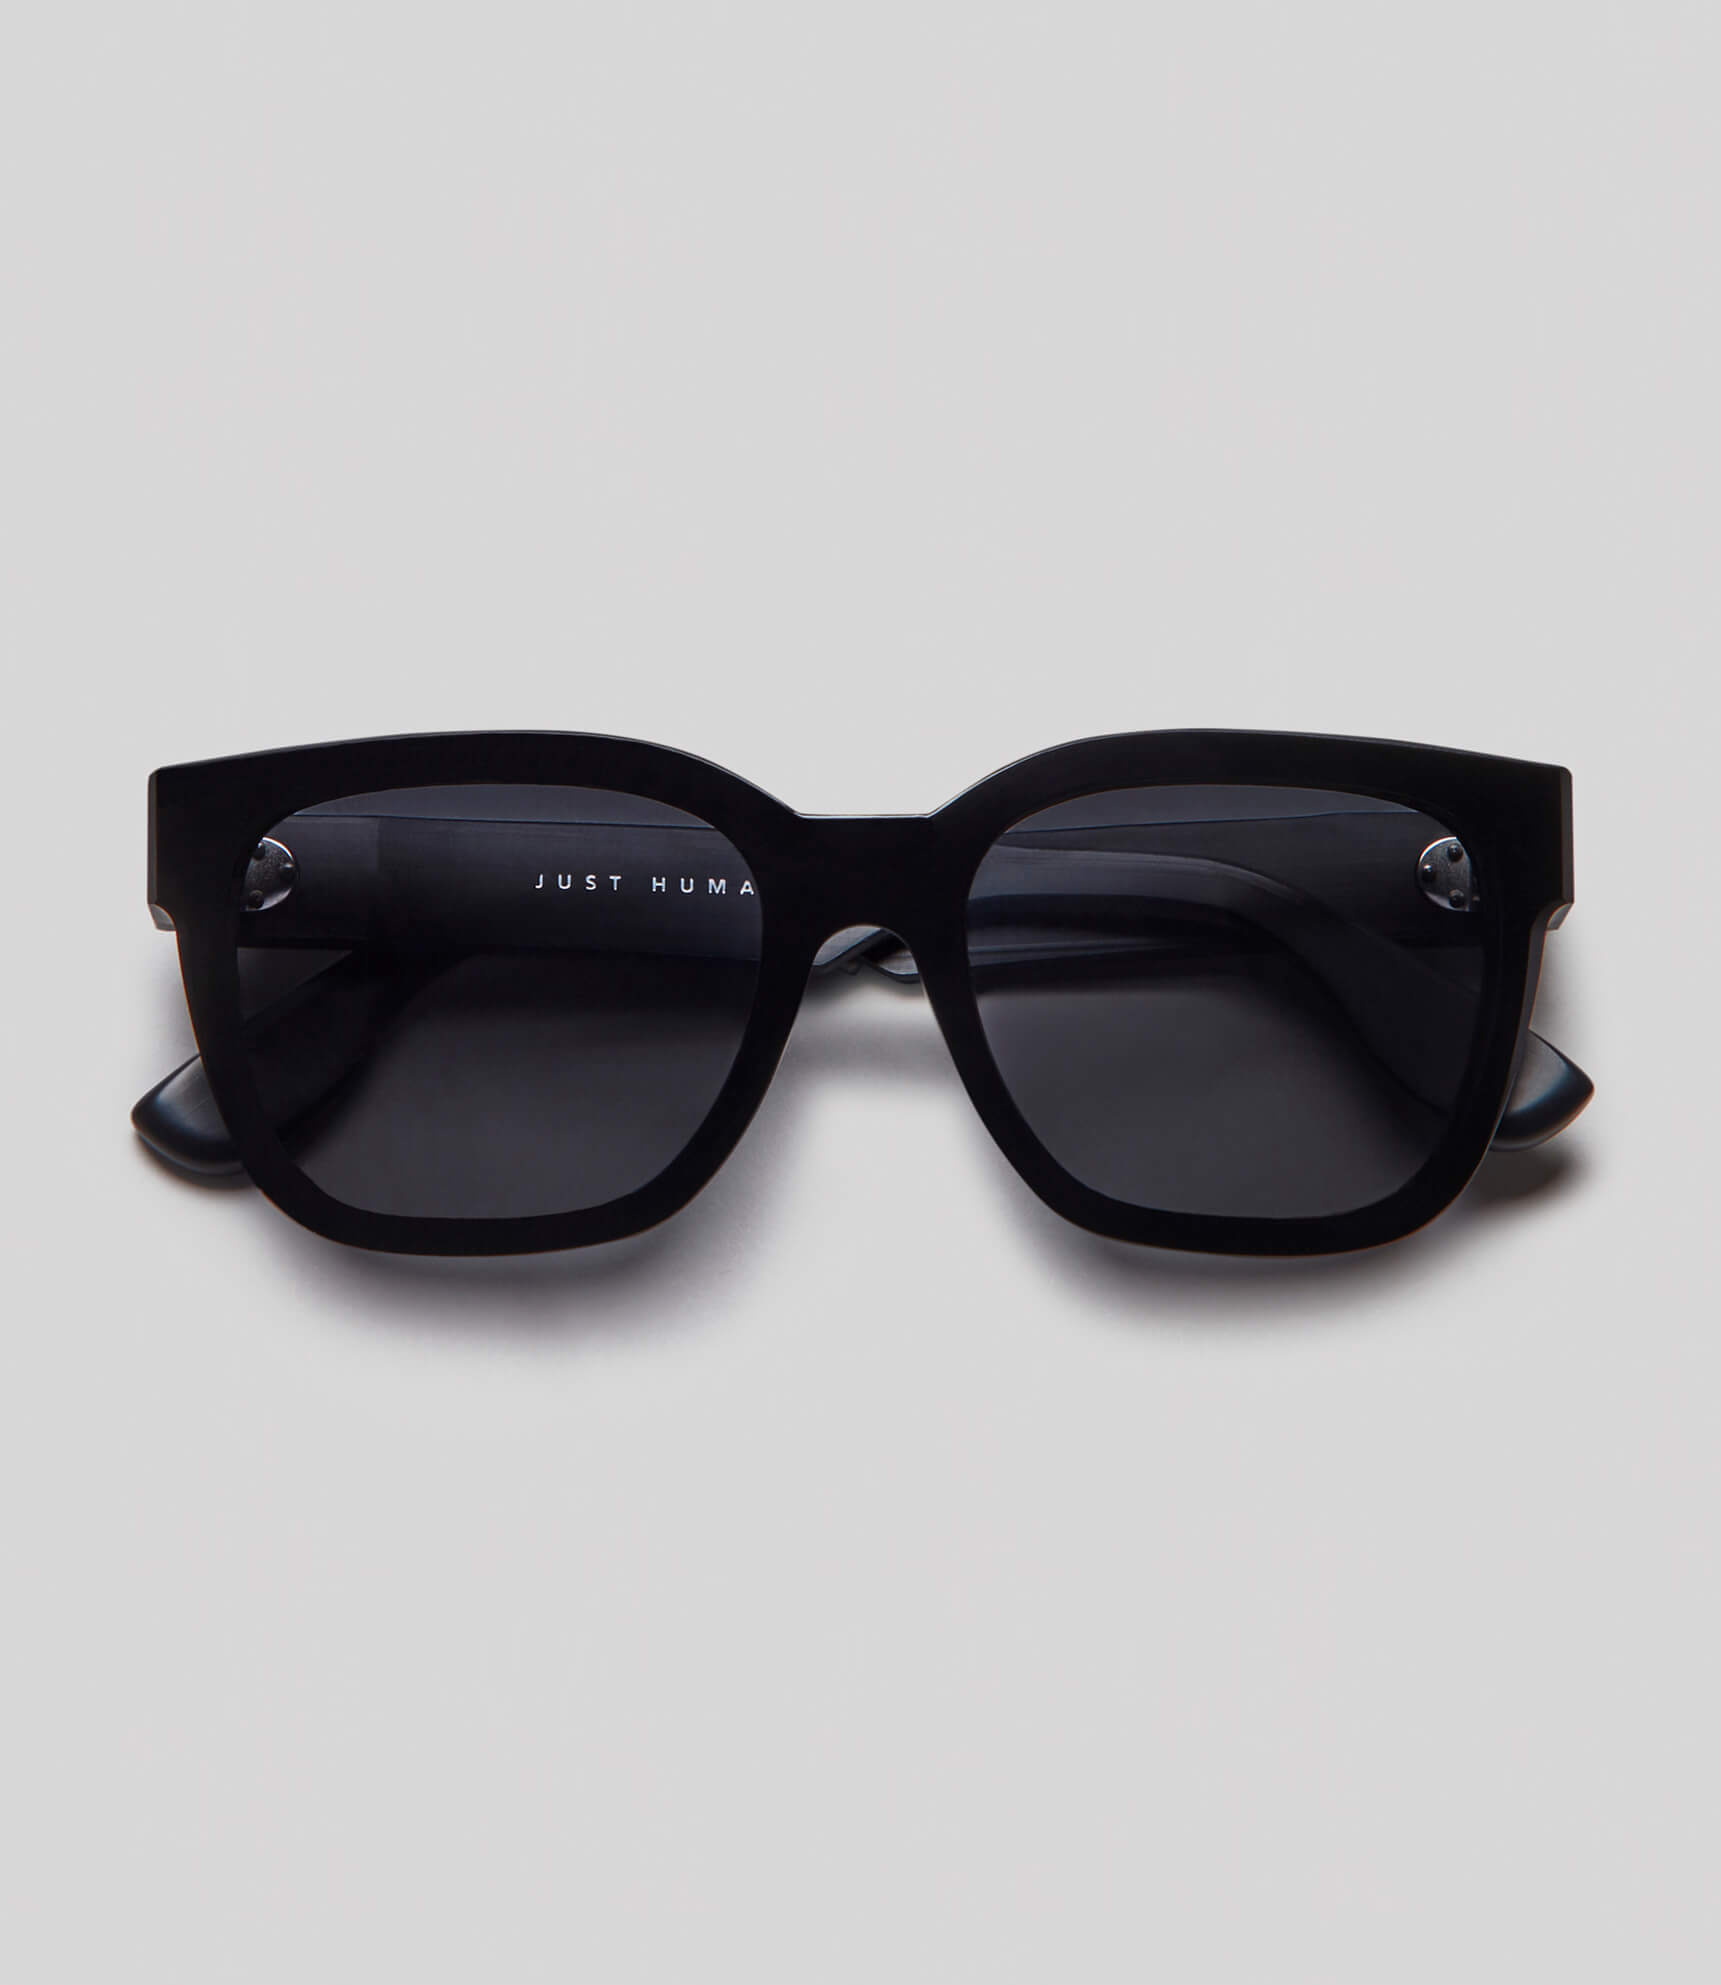 Black square sunglasses eco friendly sustainable fashion made in Japan unisex sunglasses for men sunglasses for women and blue light filter